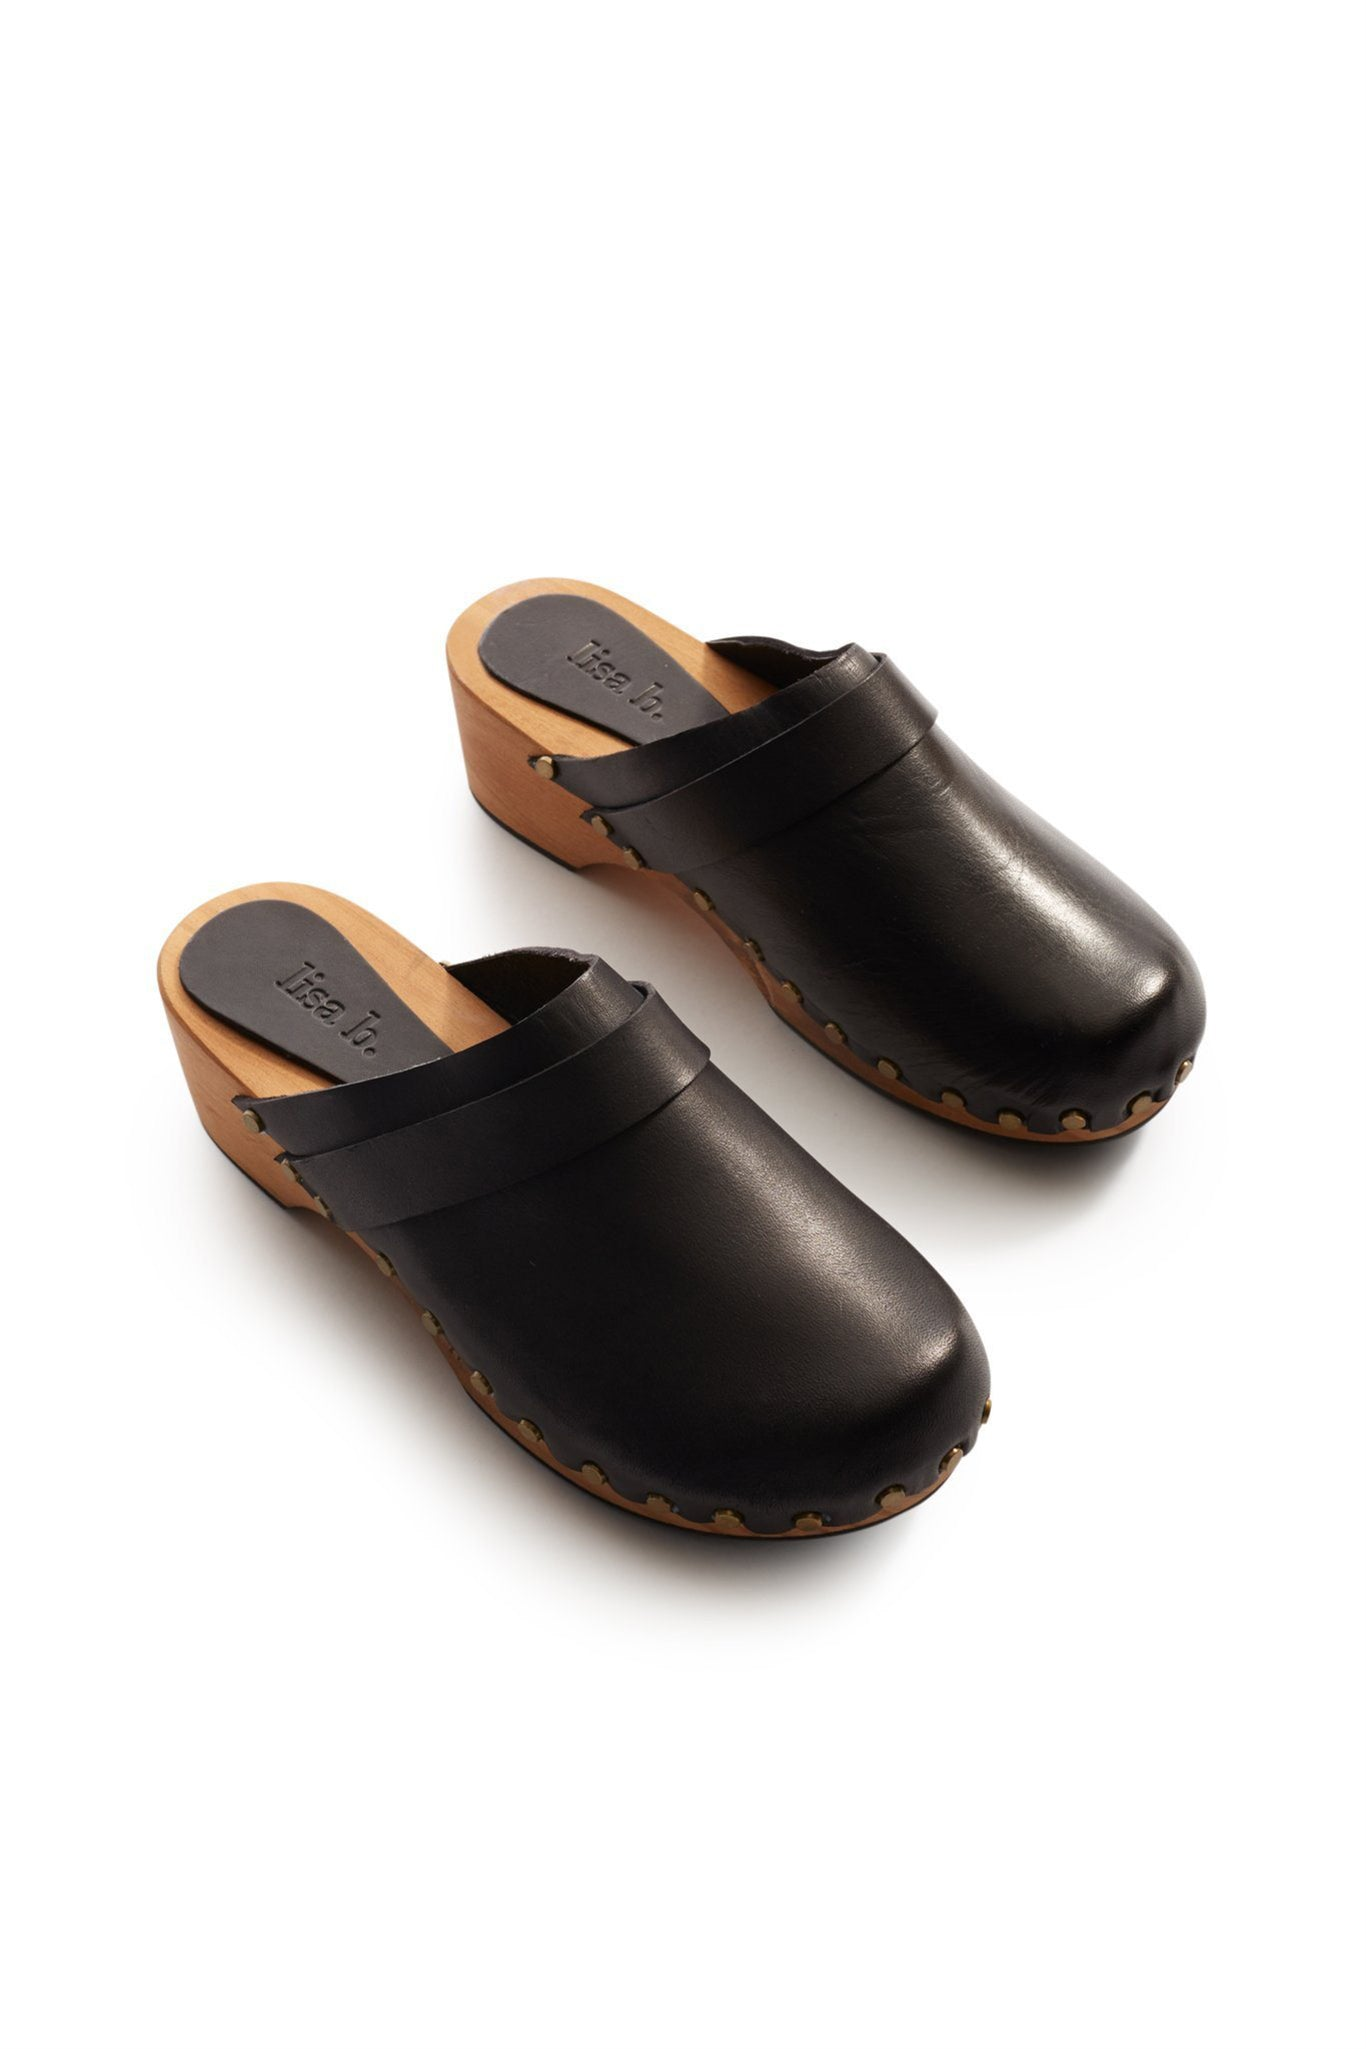 lisa b. Low Heel Leather Clogs - Black